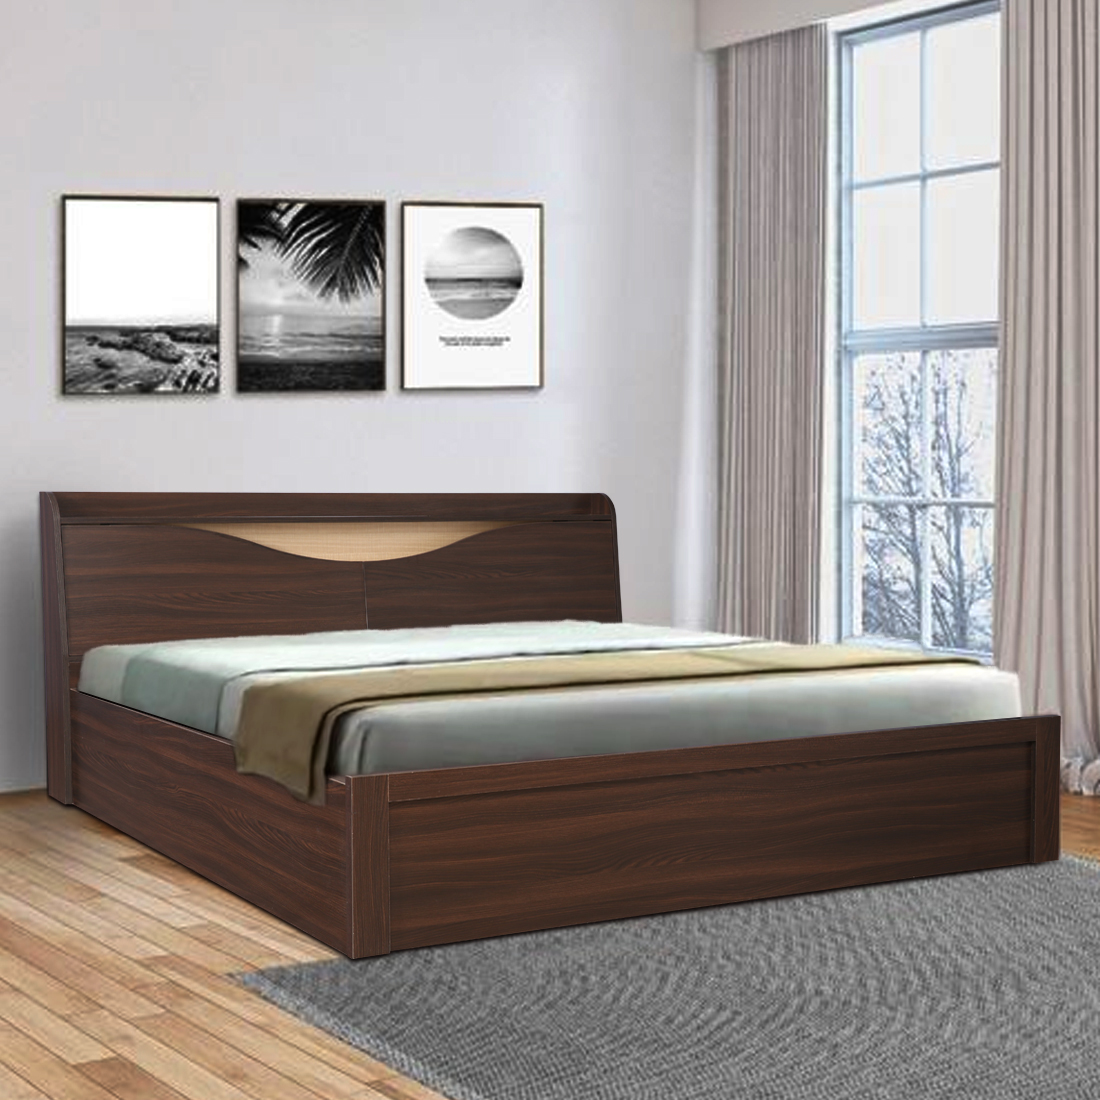 Magnolia Engineered Wood Hydraulic Storage King Size Bed in Oak Colour by HomeTown